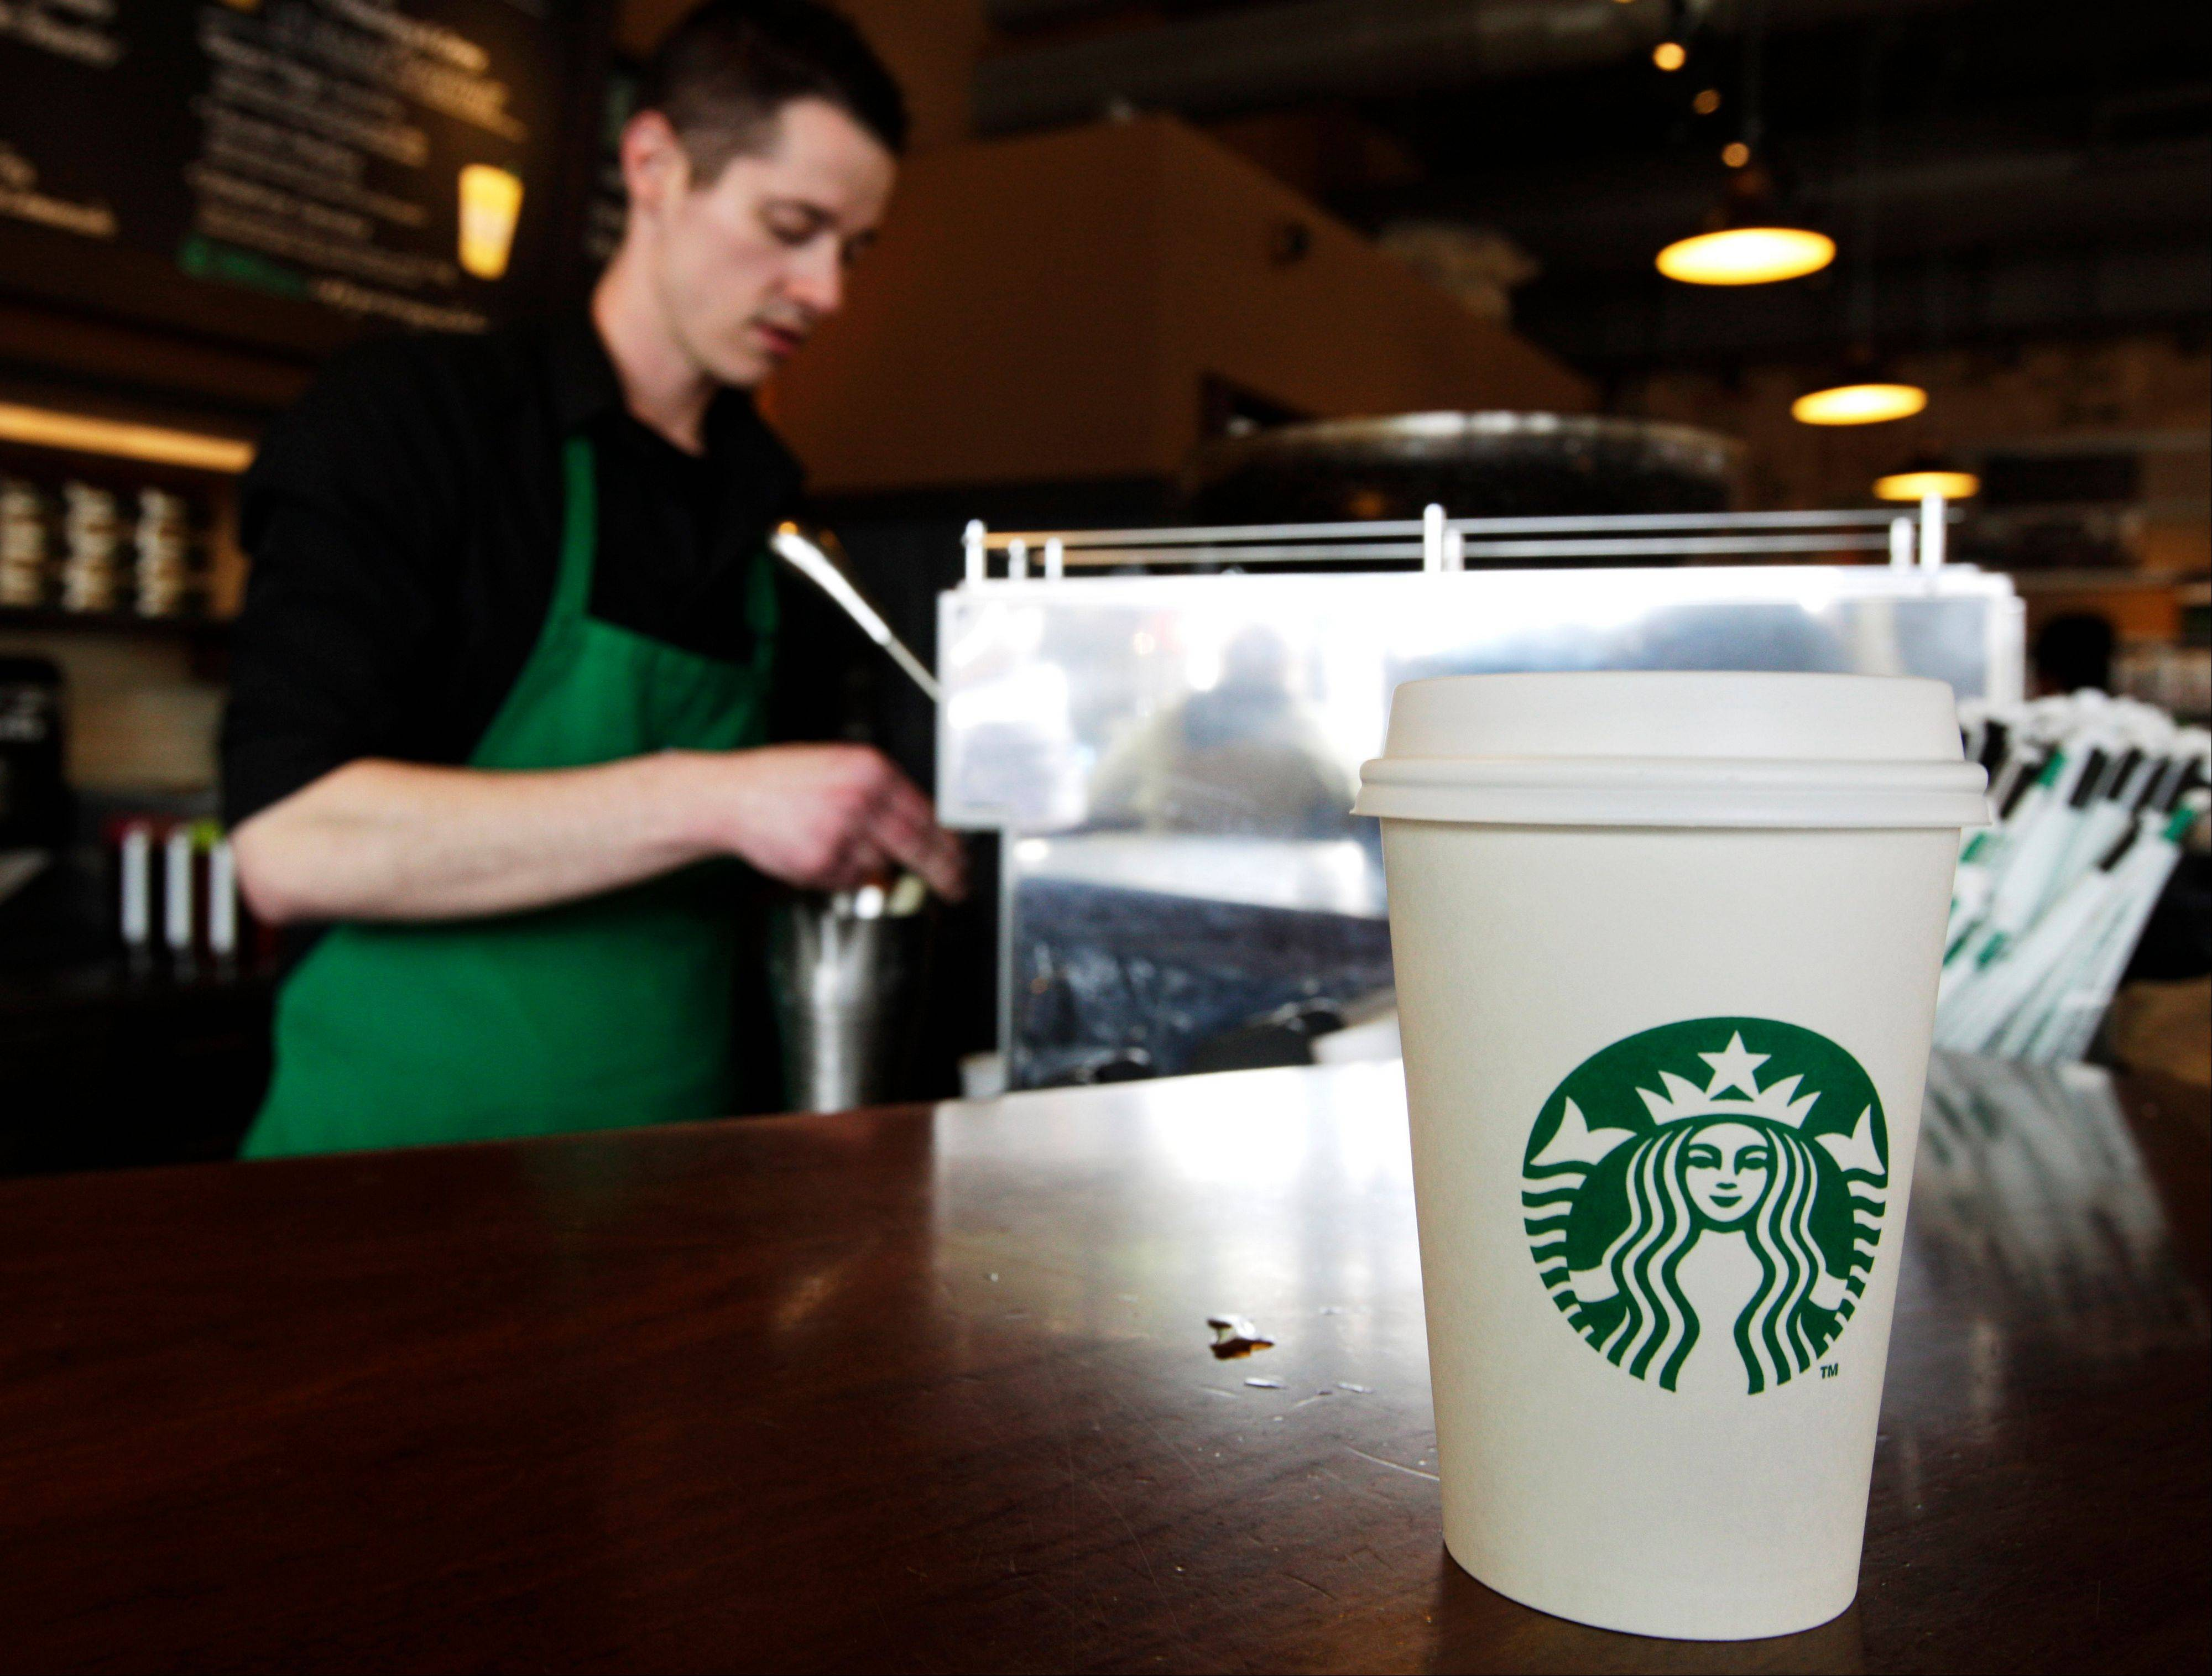 Starbucks CEO Howard Schultz wants lawmakers to come together to resolve their political gridlock. From Oct. 9-11 the coffee chain is offering a free tall brewed coffee to any customer in the U.S. who buys another person a beverage at Starbucks.